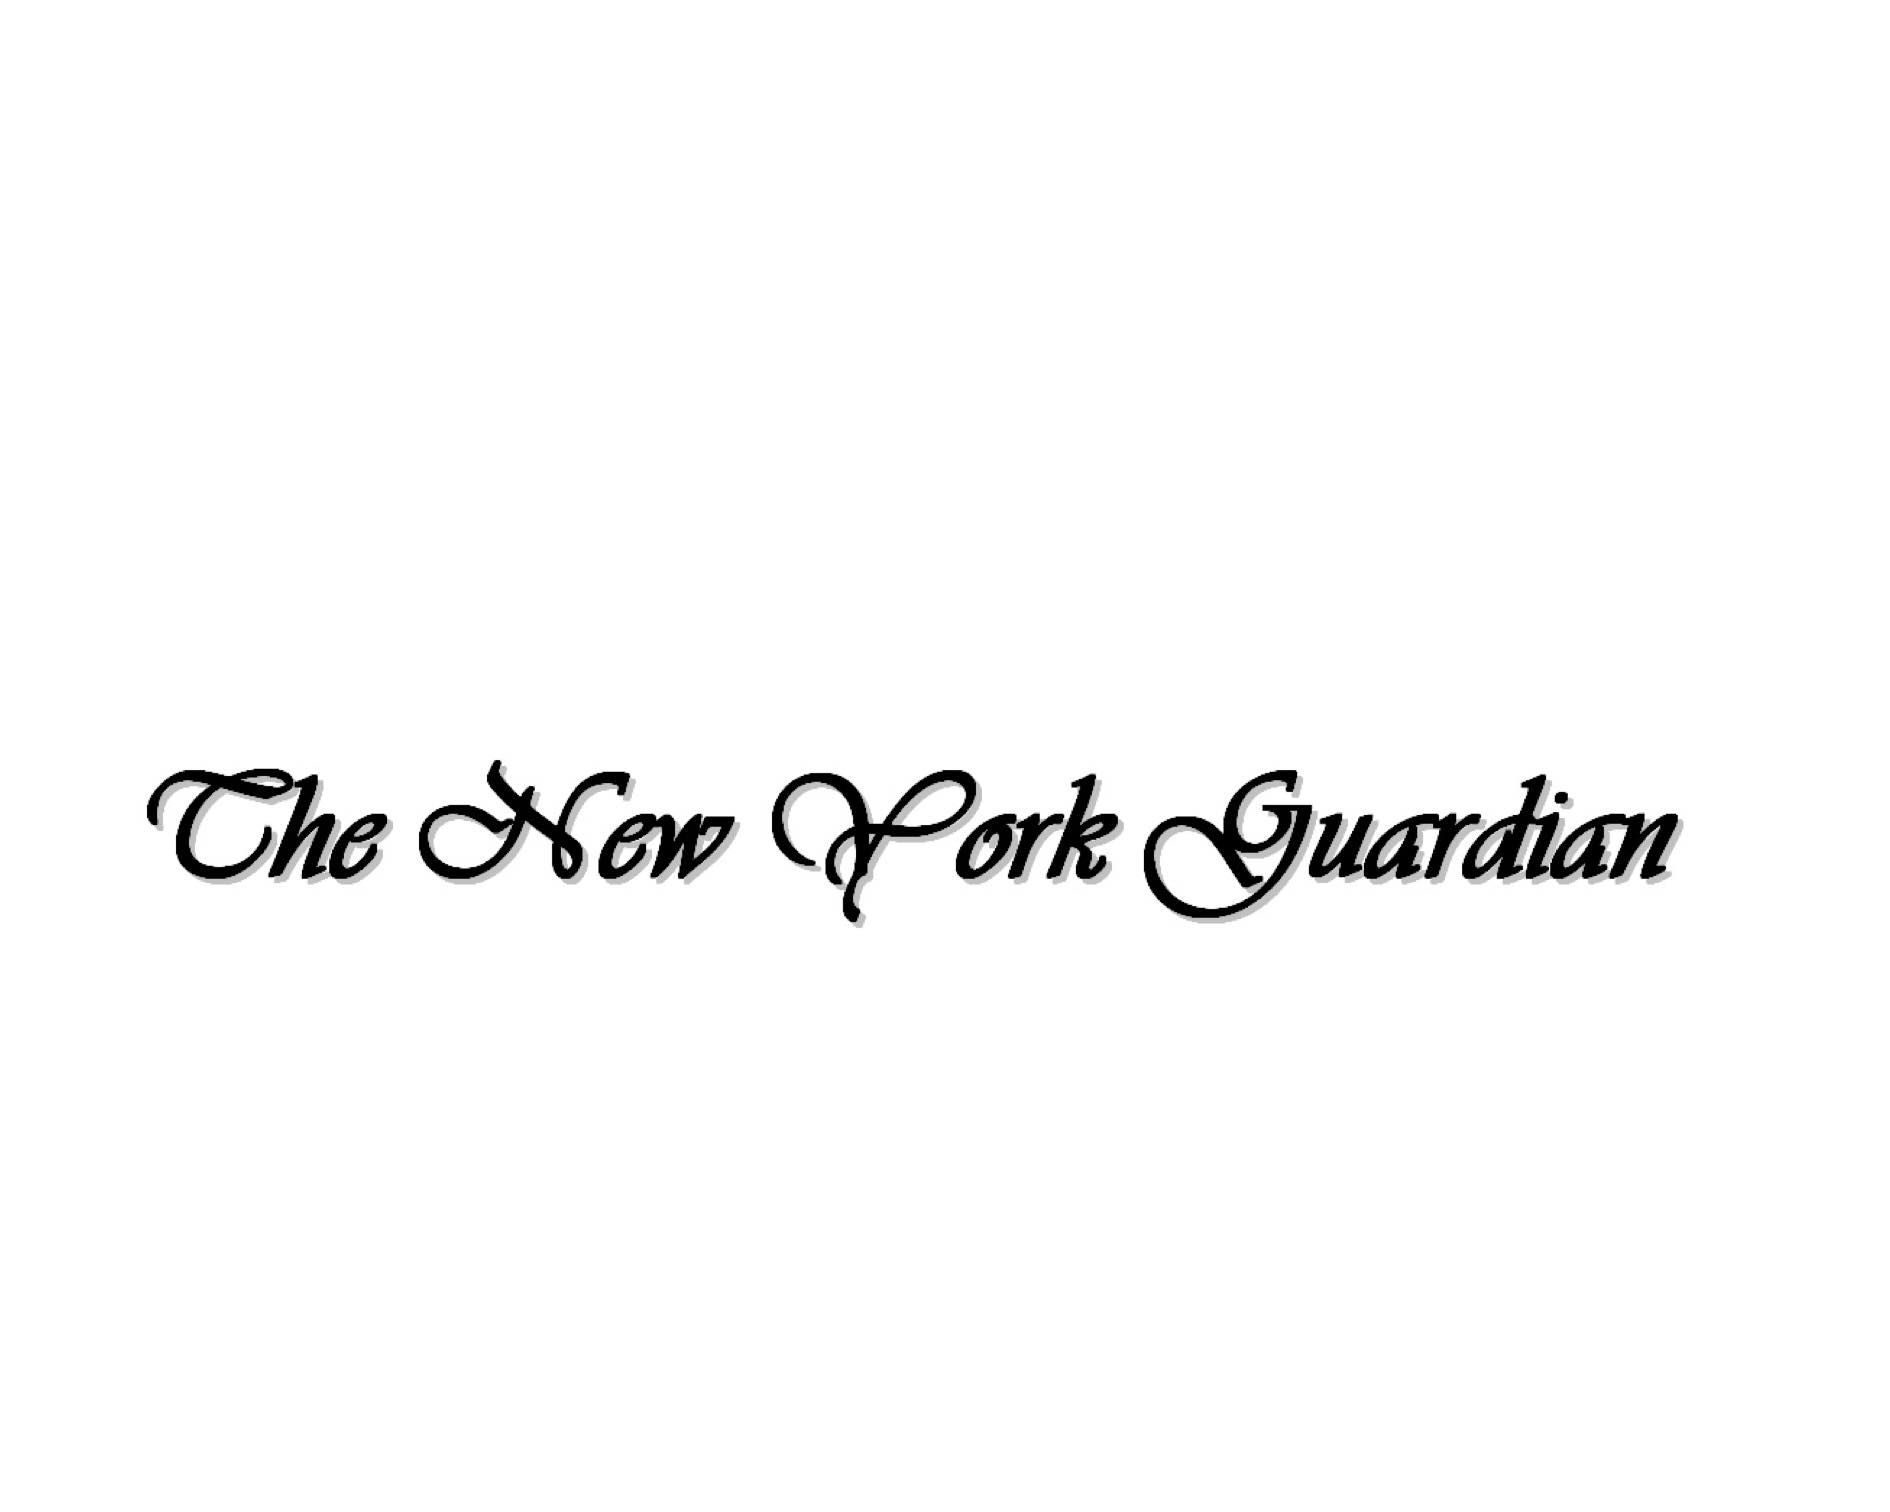 The New York Guardian